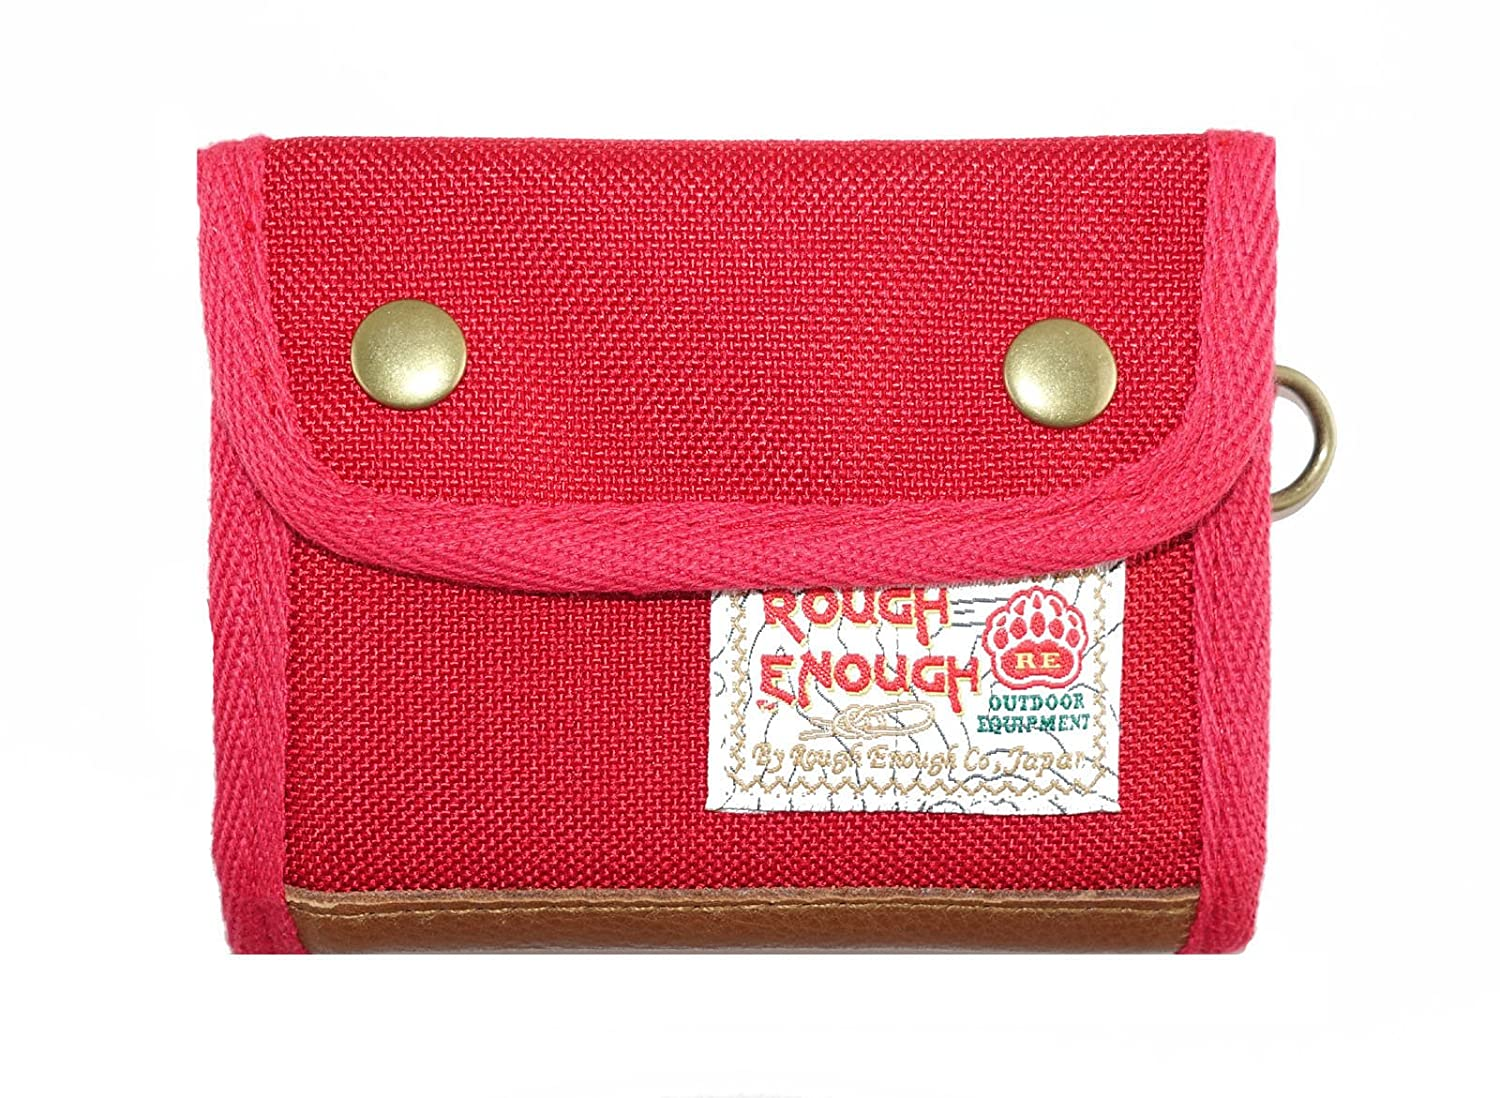 ROUGH ENOUGH Classic Vintage Polyester Leather Trimming Large Capacity Trifold Portable Shopping Coin Cash Zipper Wallet Purse Money Holder for Women Kids Boys Teen with Snap Button Closure Outdoors ROUGH ENOUGH INC. RE8333